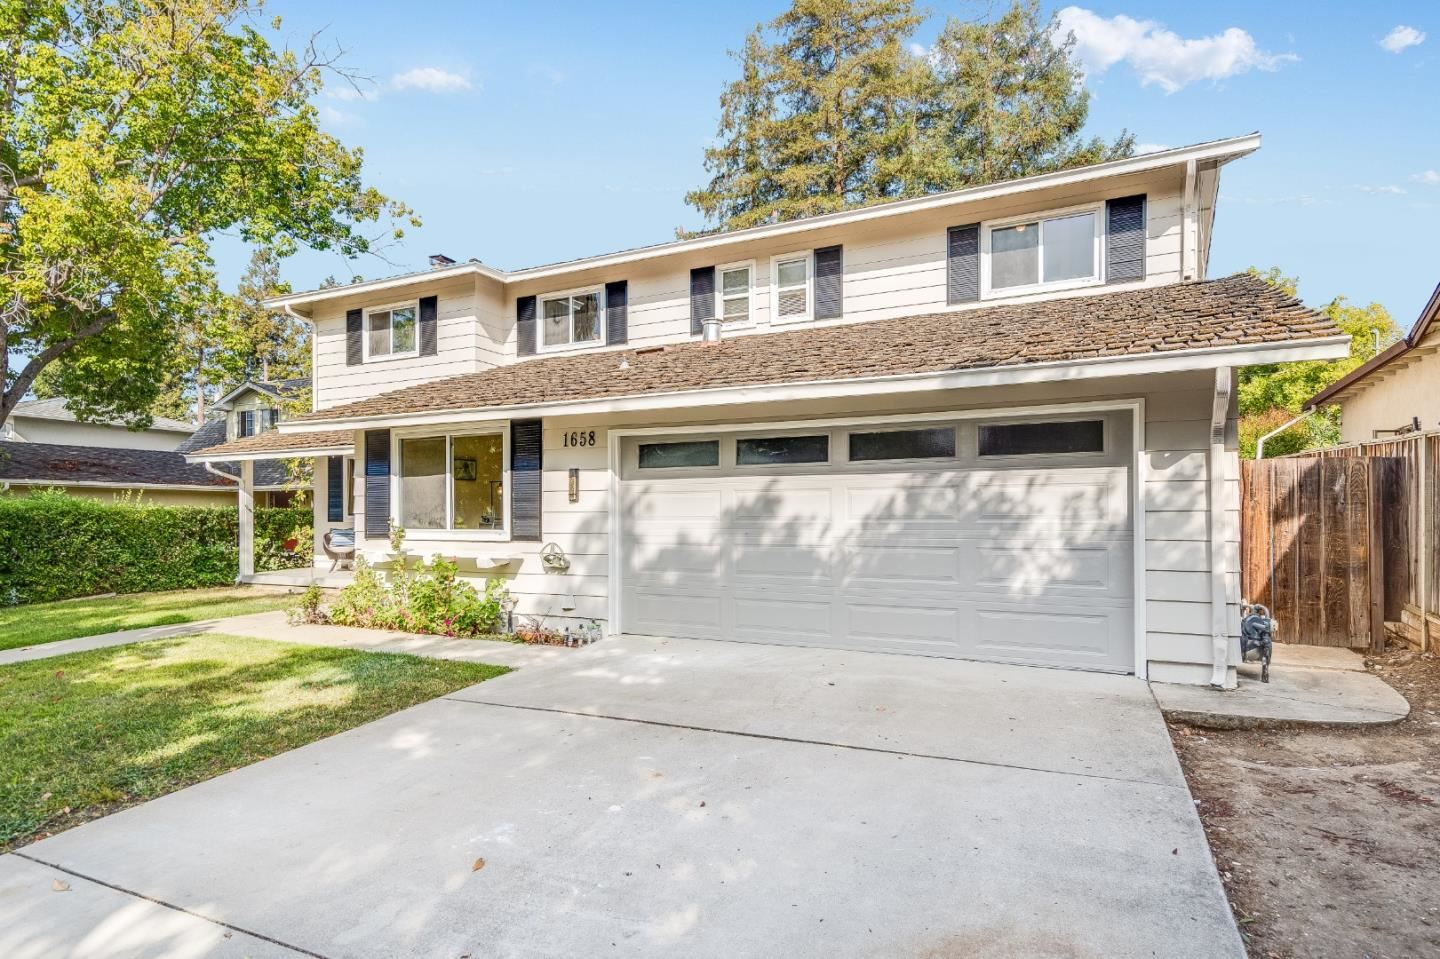 Photo for 1658 Jamestown DR, CUPERTINO, CA 95014 (MLS # ML81812389)